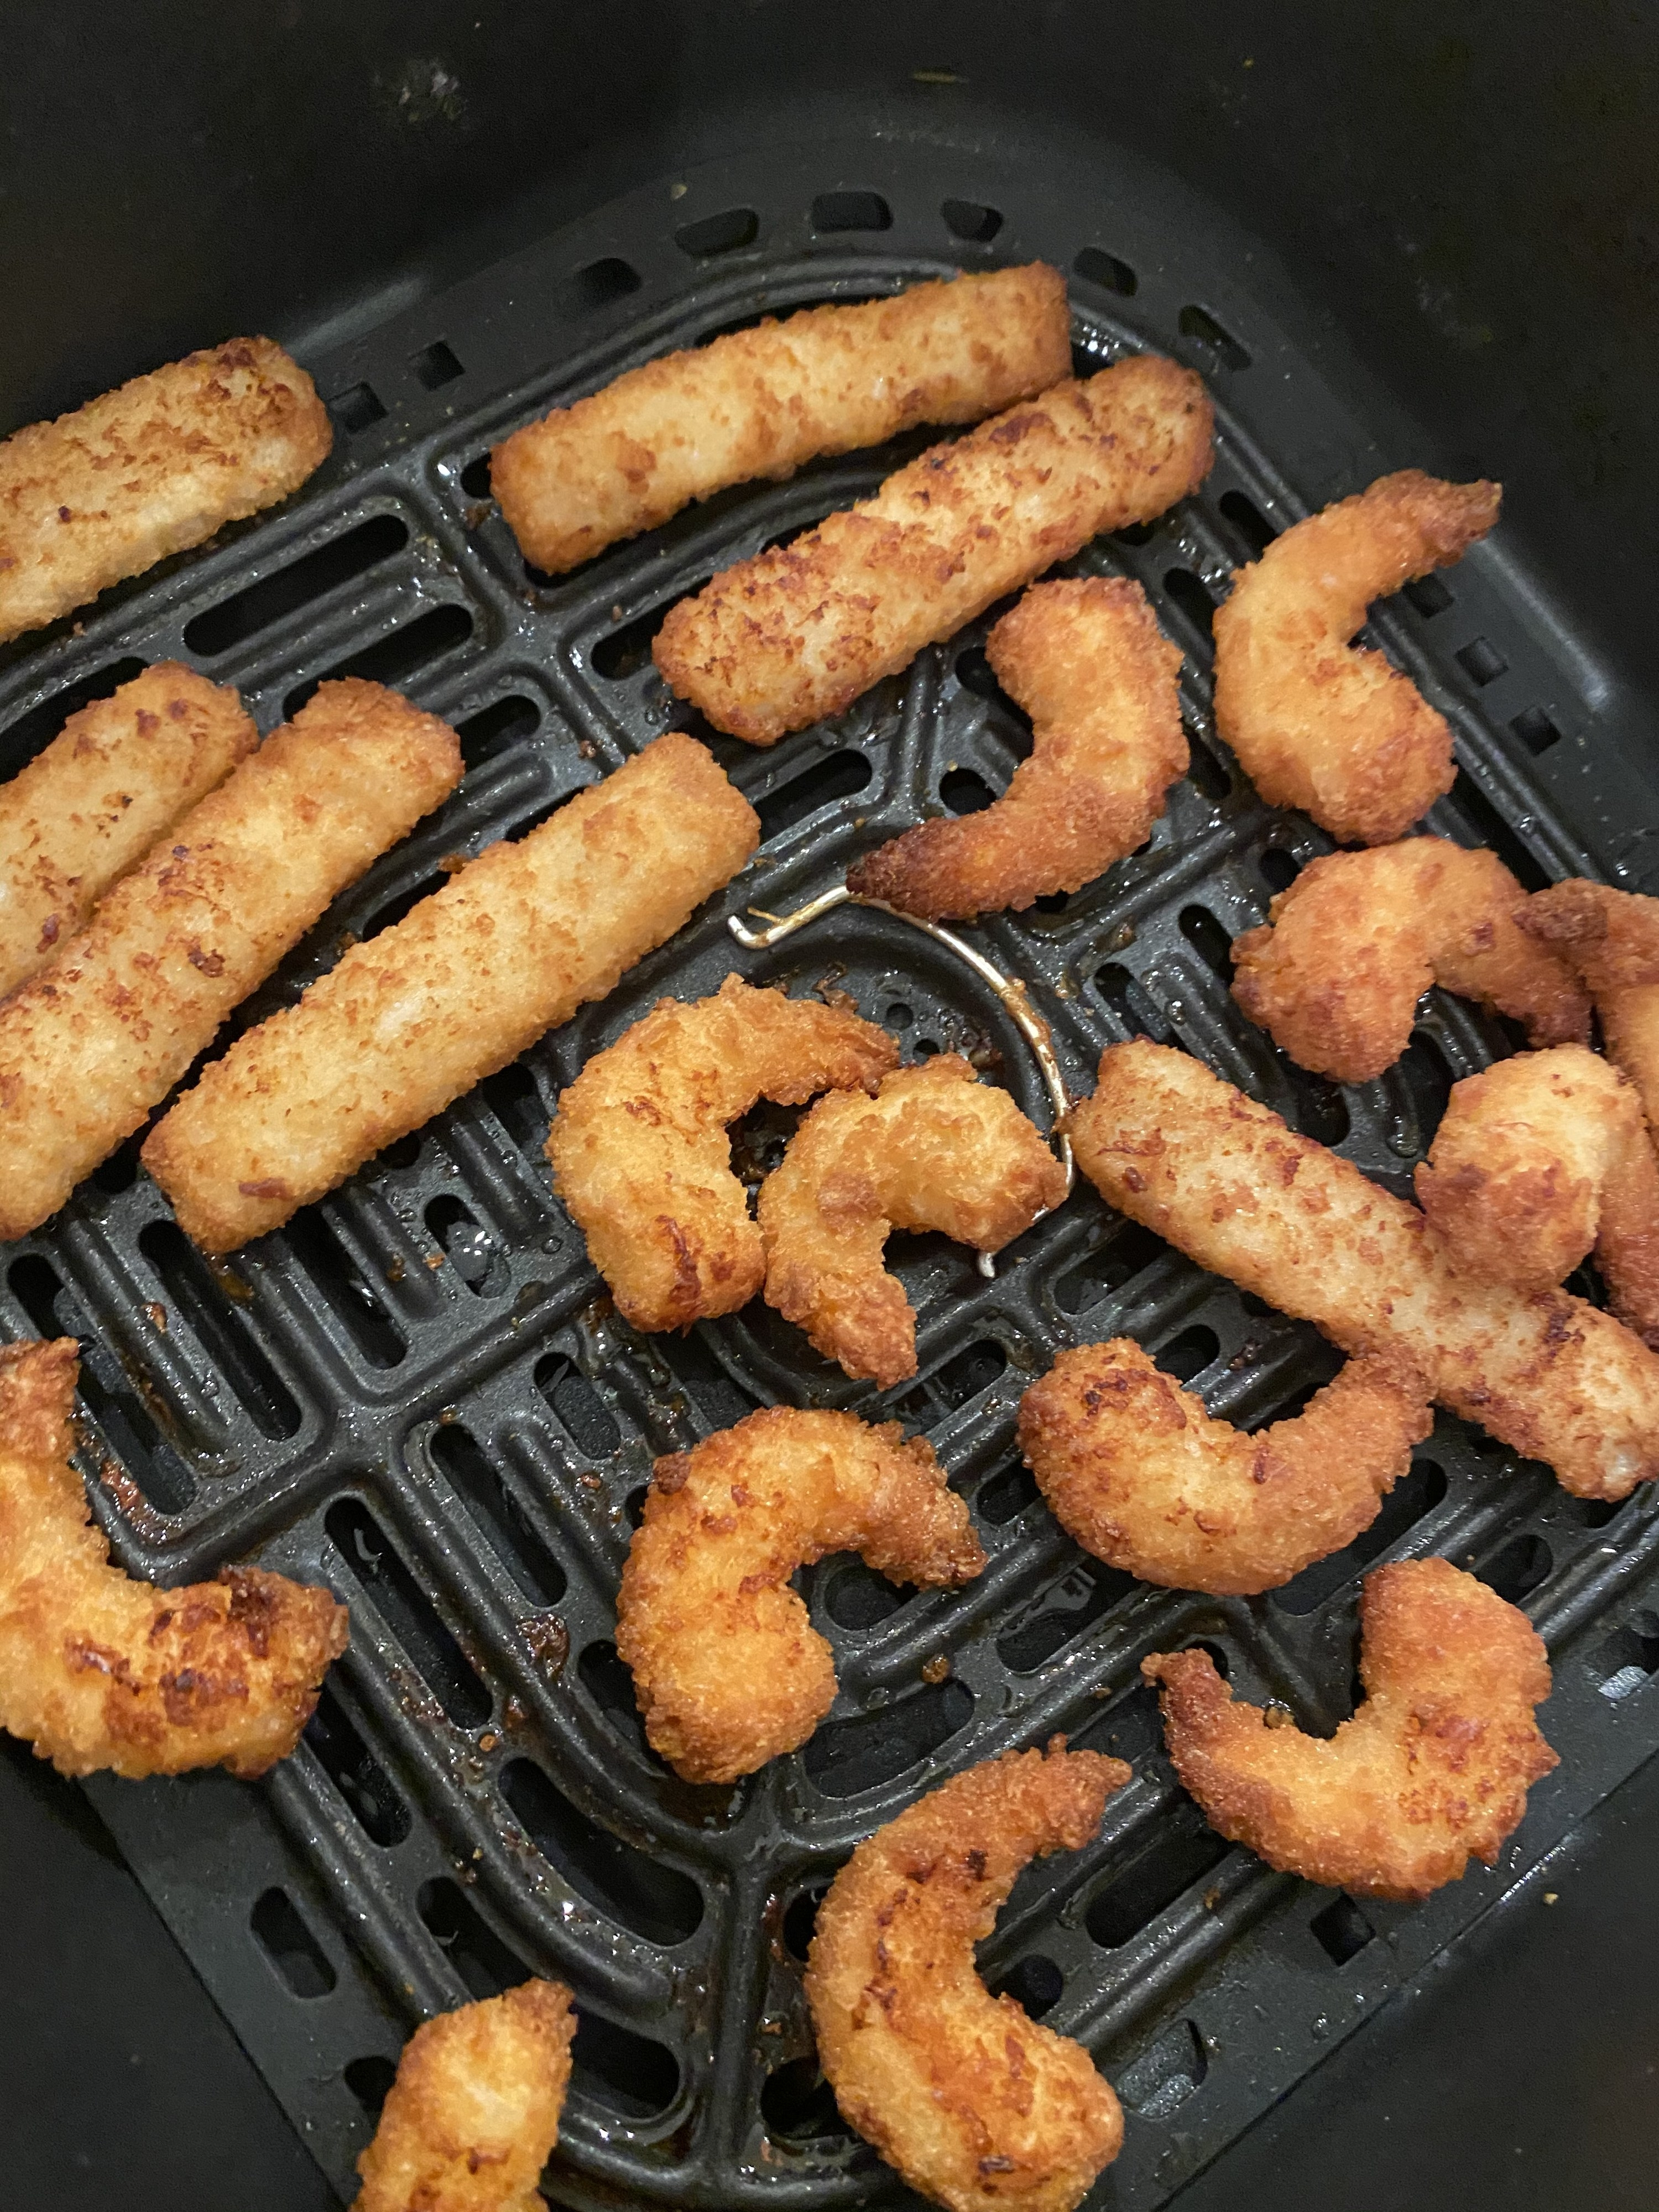 Popcorn shrimp and fish sticks getting golden brown and crispy in an air fryer.